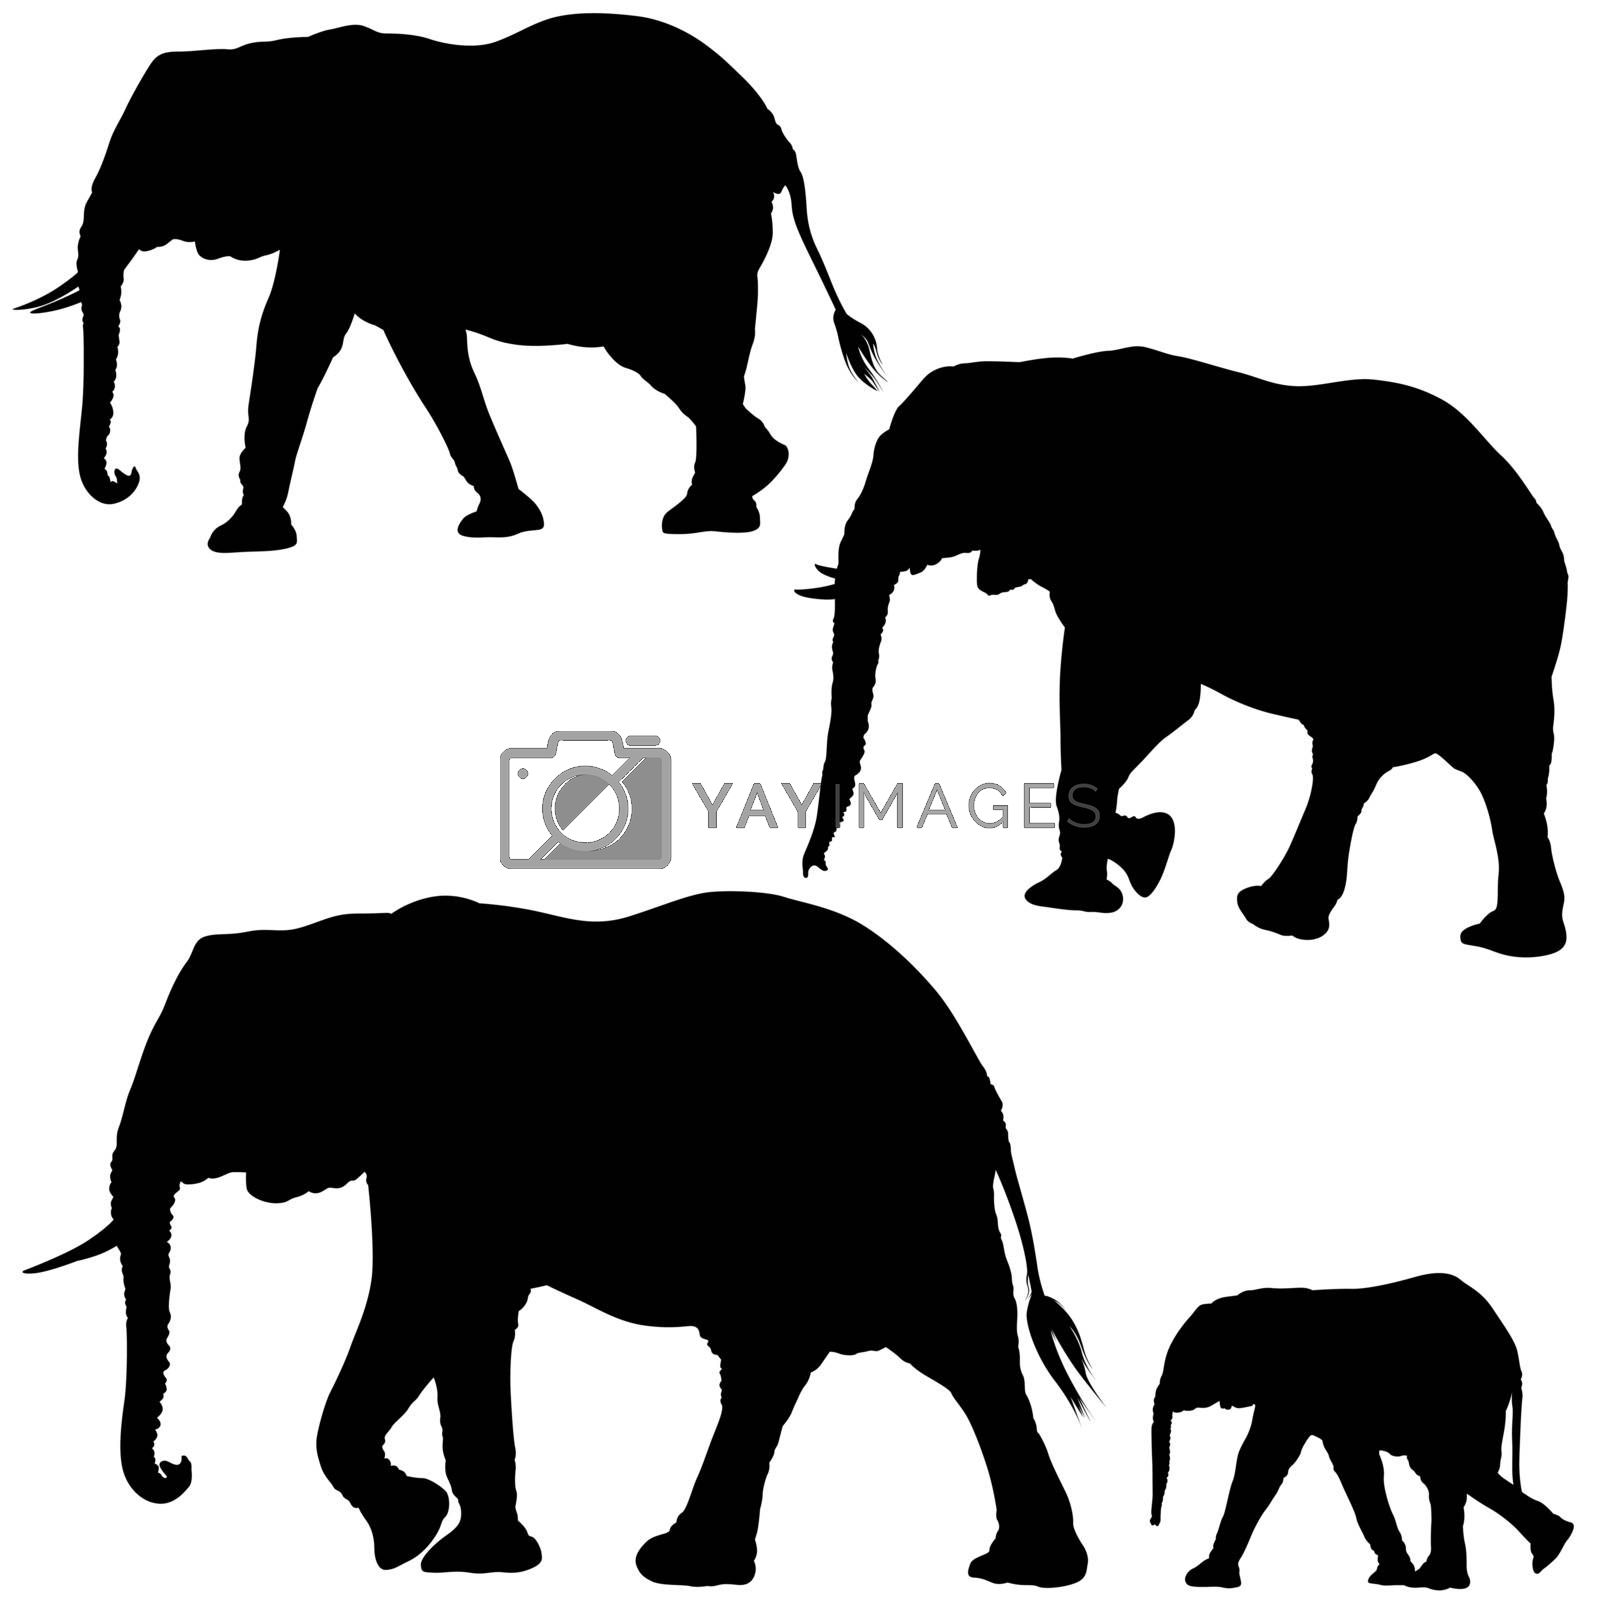 Elephant Collection - Black Silhouettes, Vector